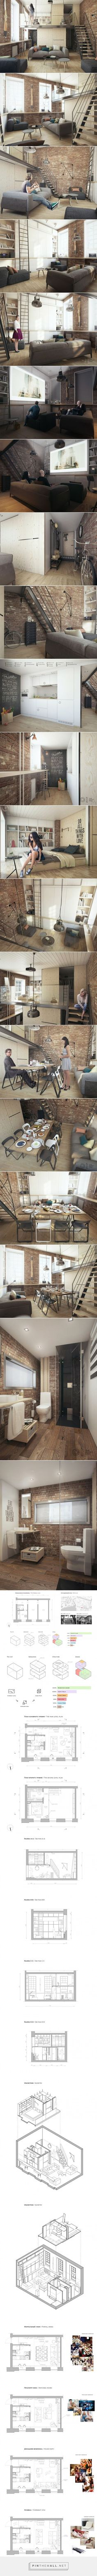 A Super Small Apartment That Adapts To Its Owner's Needs... - a grouped images picture - Pin Them All